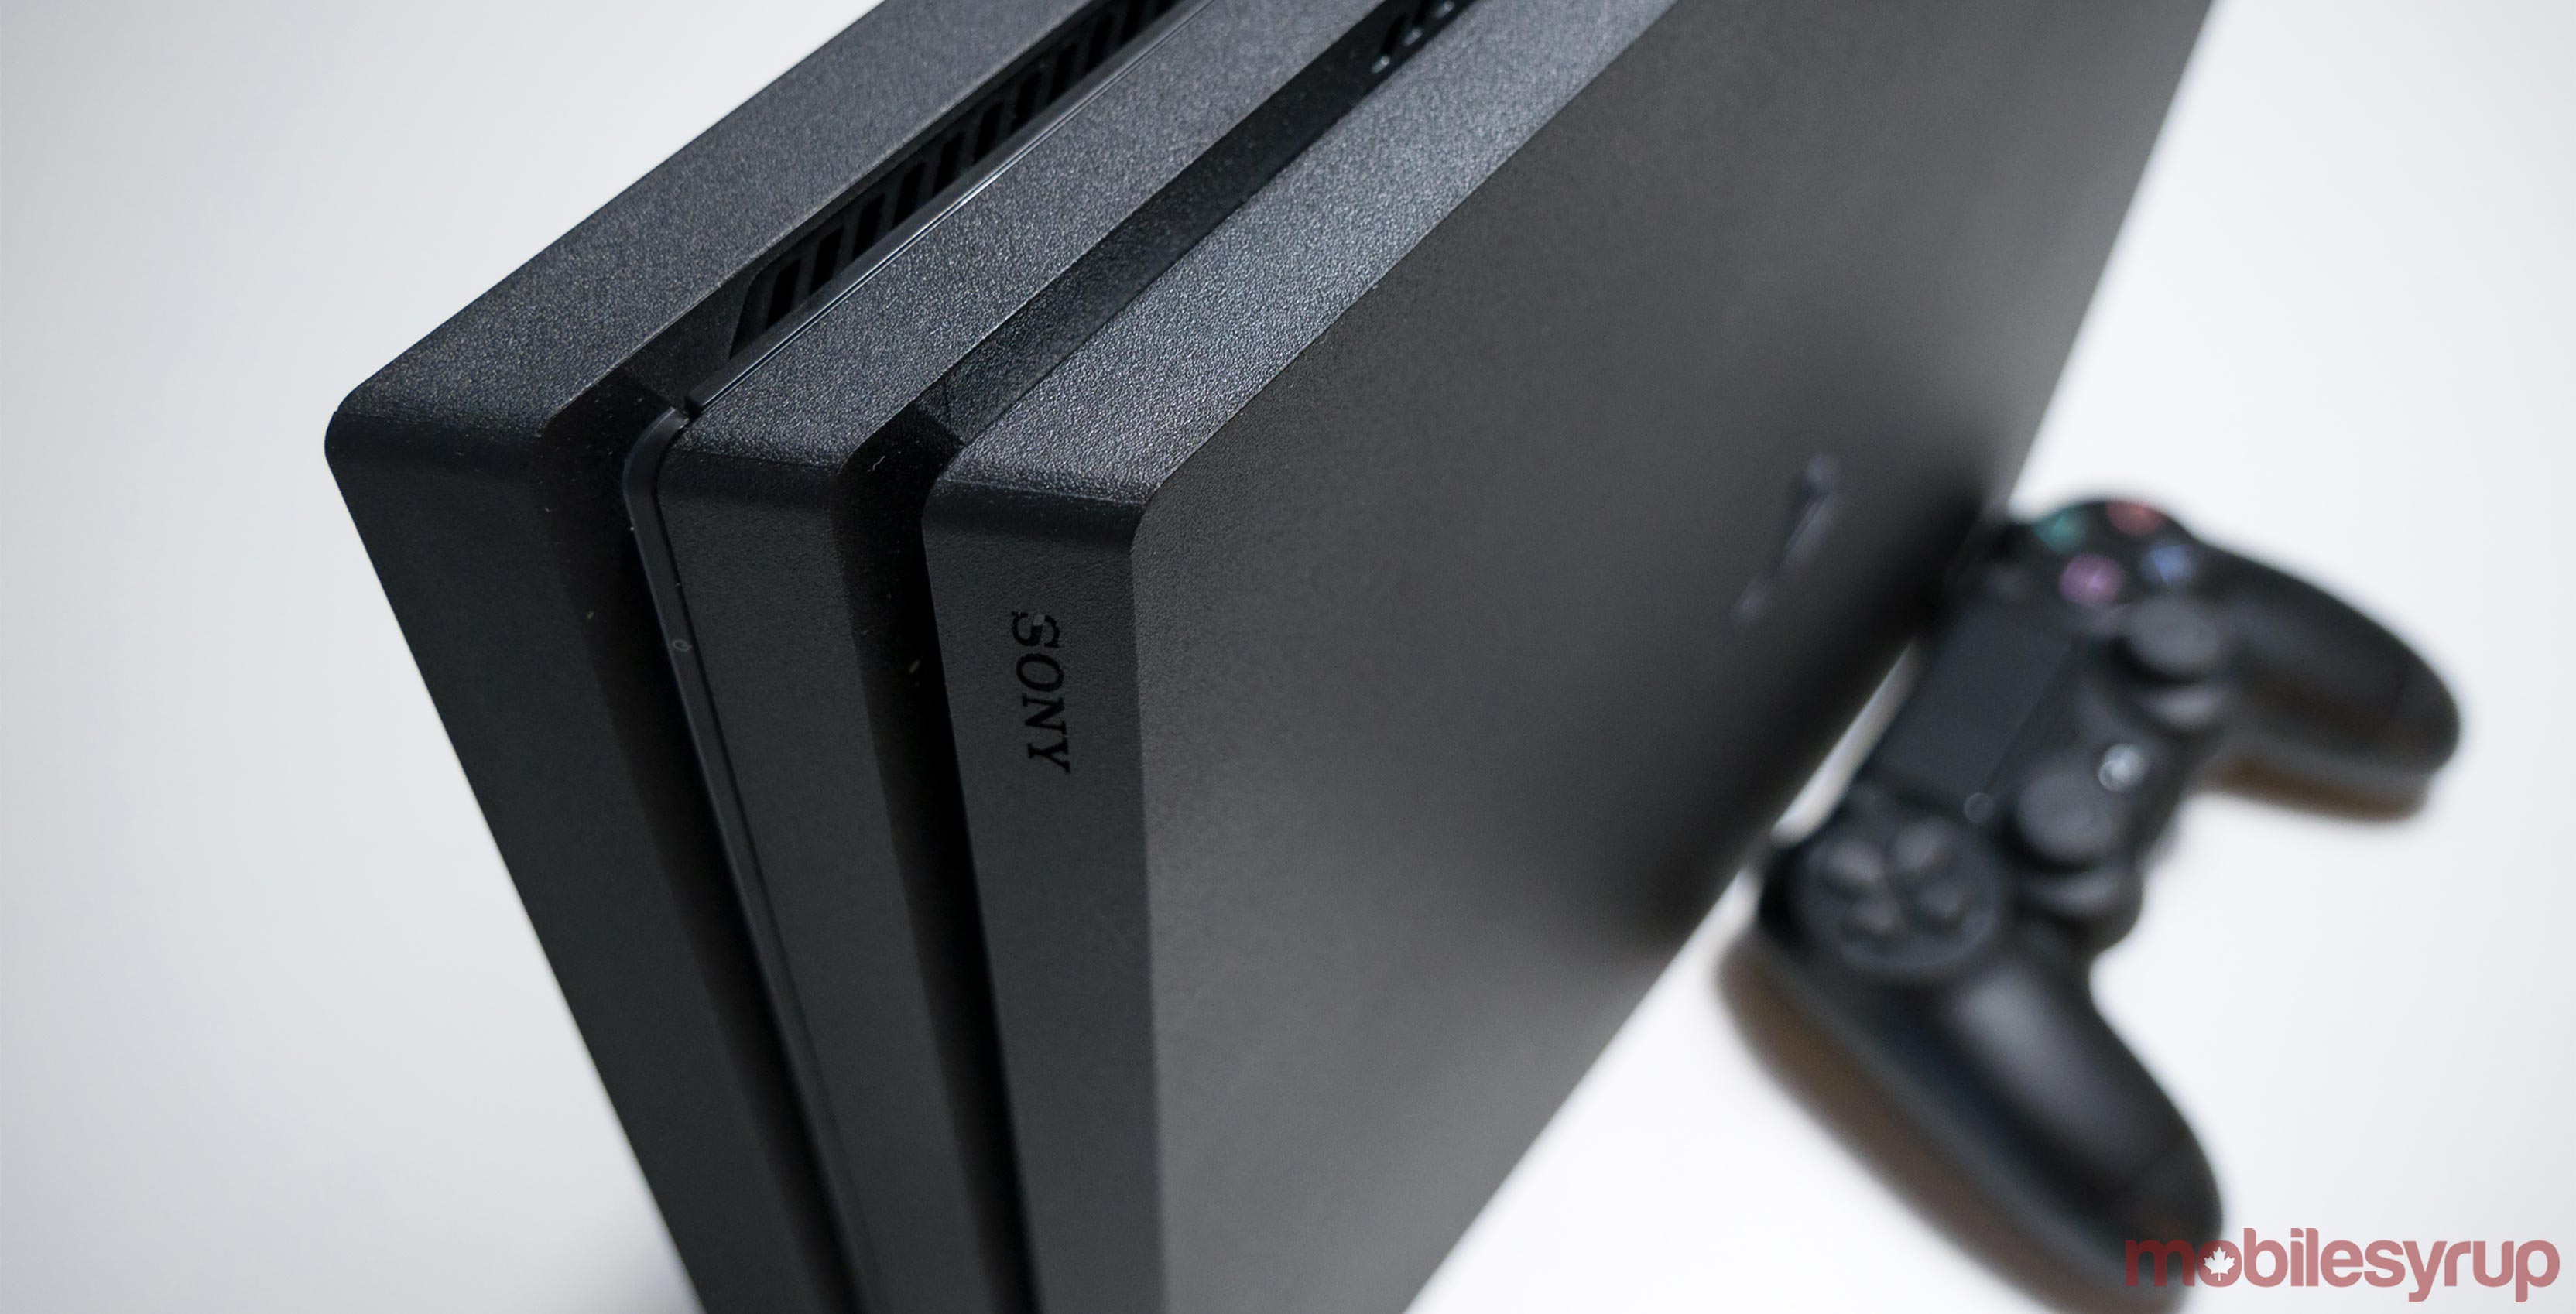 Sony's Stealth Released a New PS4 Pro Model, and It's Quieter